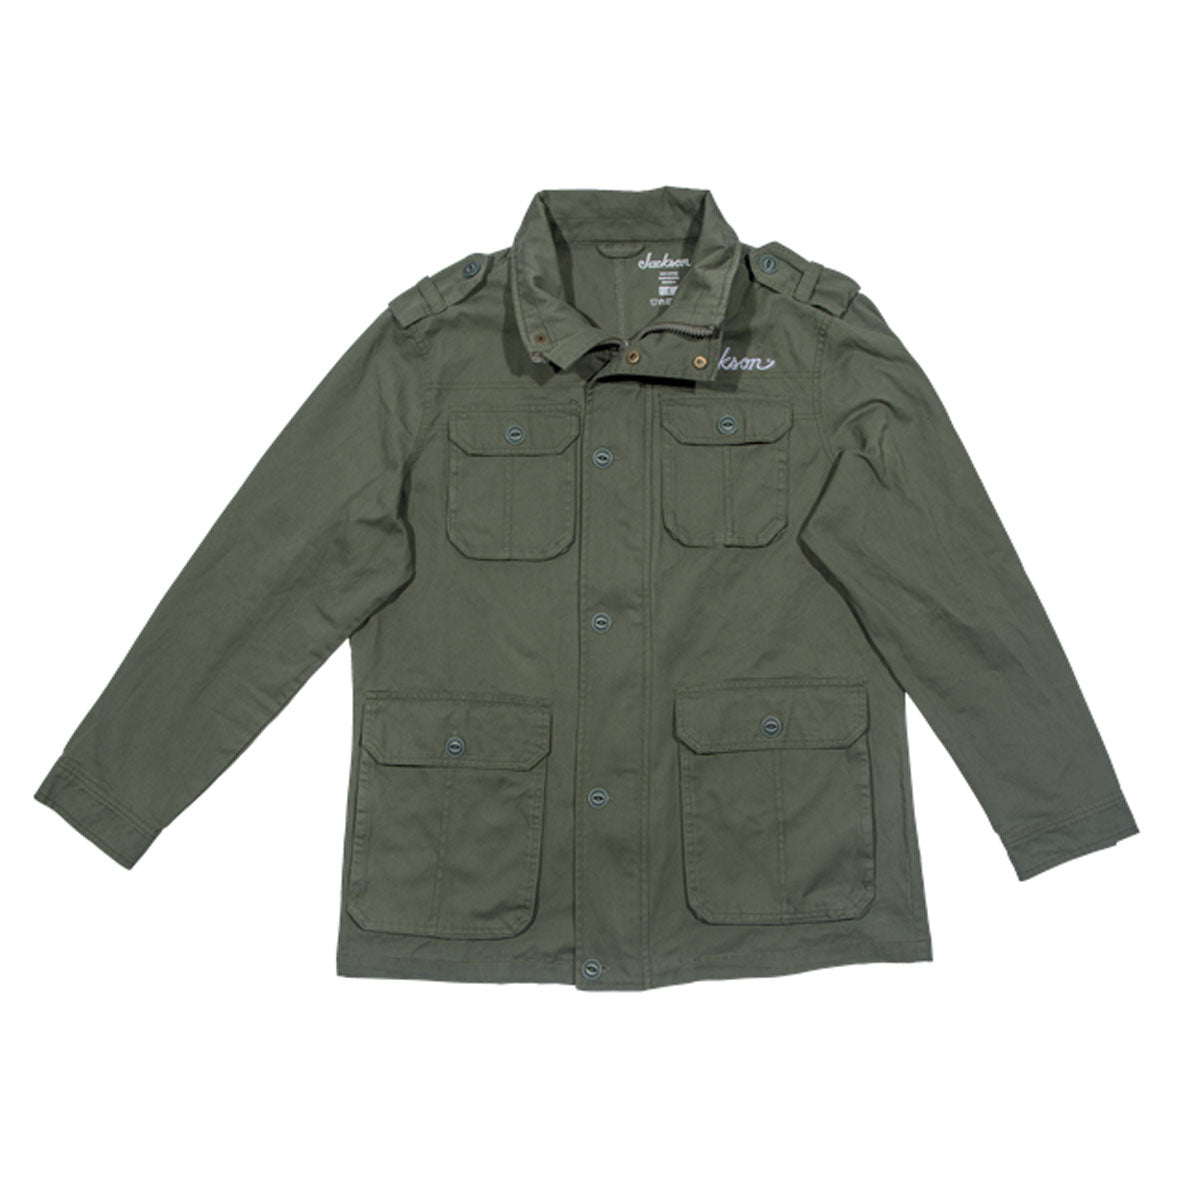 Jackson Army Jacket, Green, M Medium - 2992769506